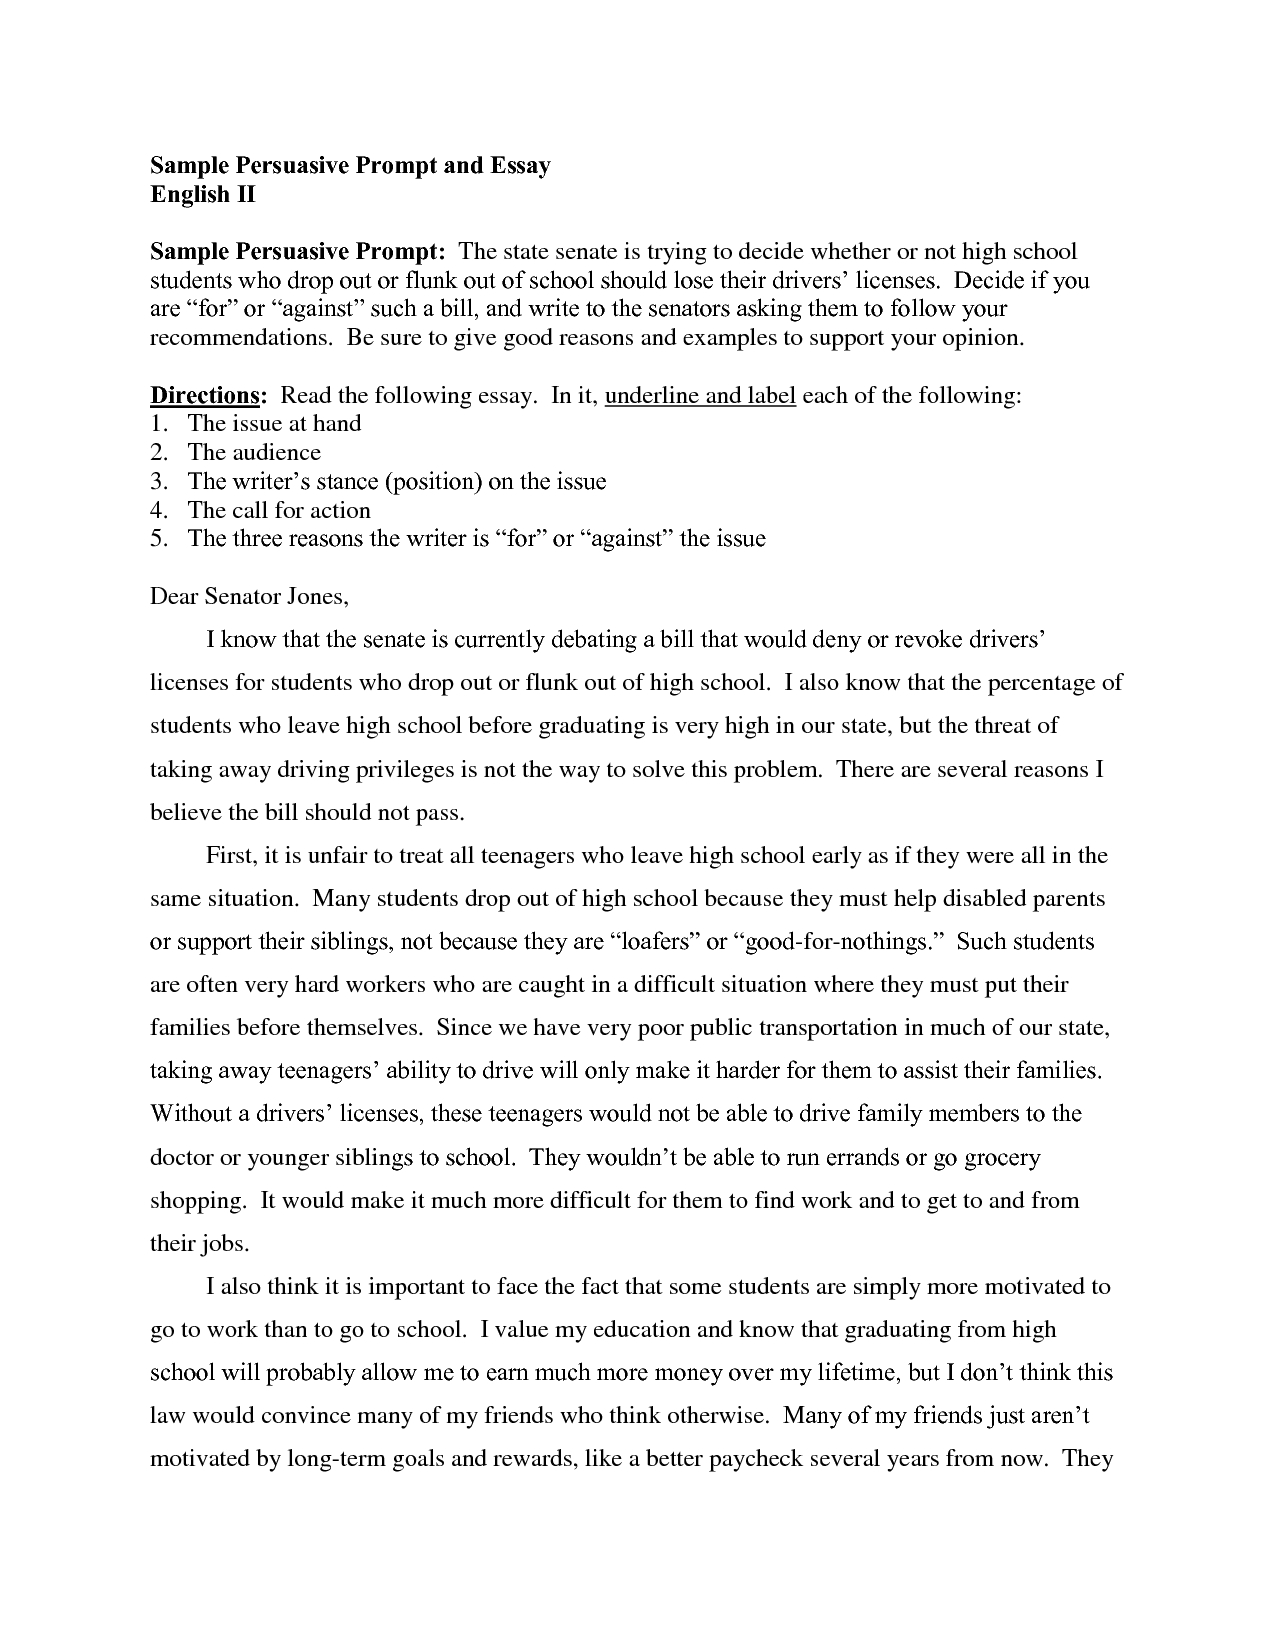 Topics For An Essay Paper  Sample Business Essay also Essay On English Subject  Informative Synthesis Essay Topics For Research Paper  Example Of A Proposal Essay